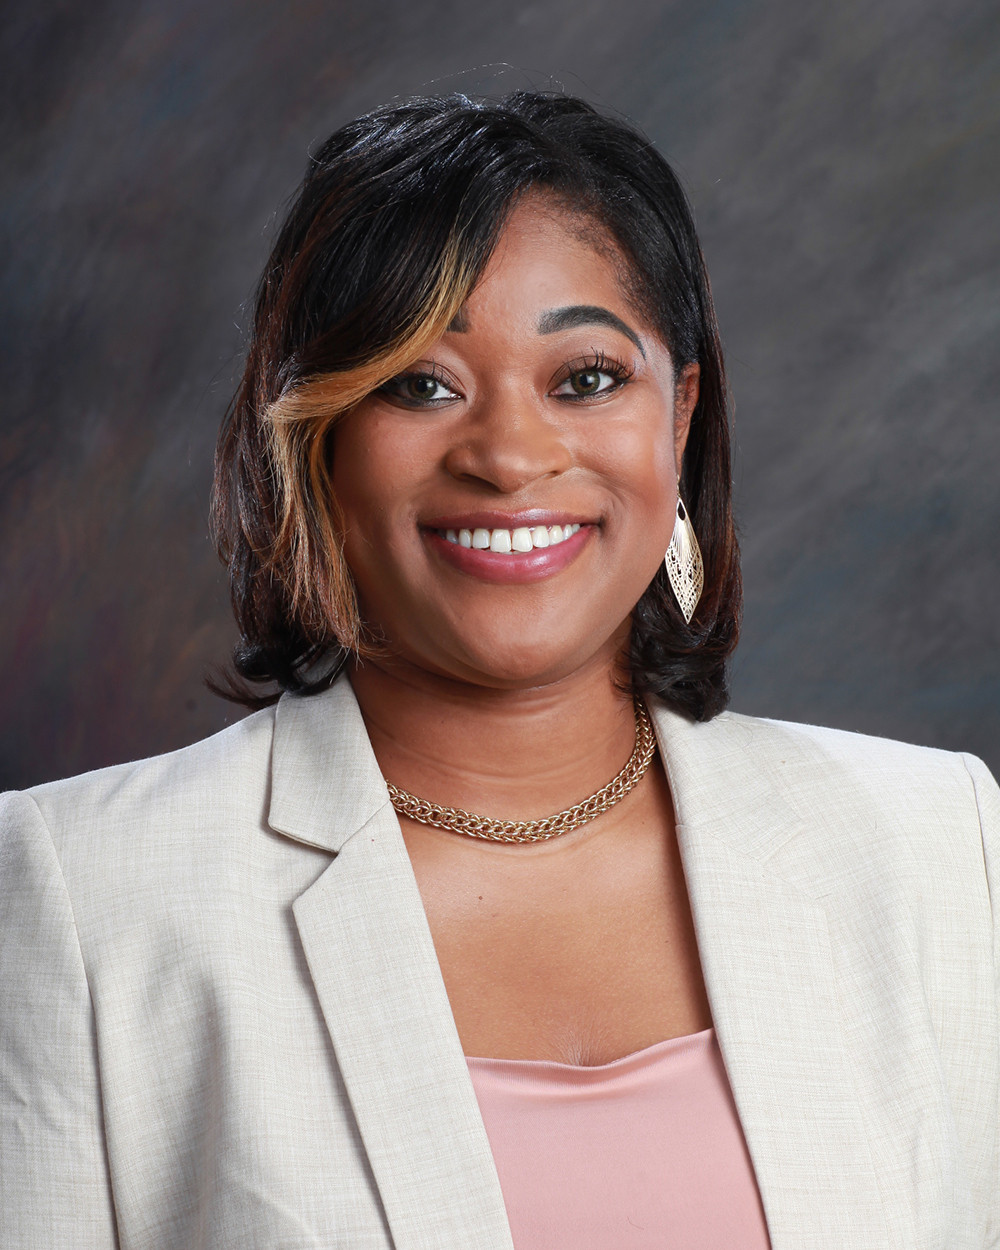 Katerra Marshall joins the Community Foundation of the Eastern Shore as the Office Coordinator.